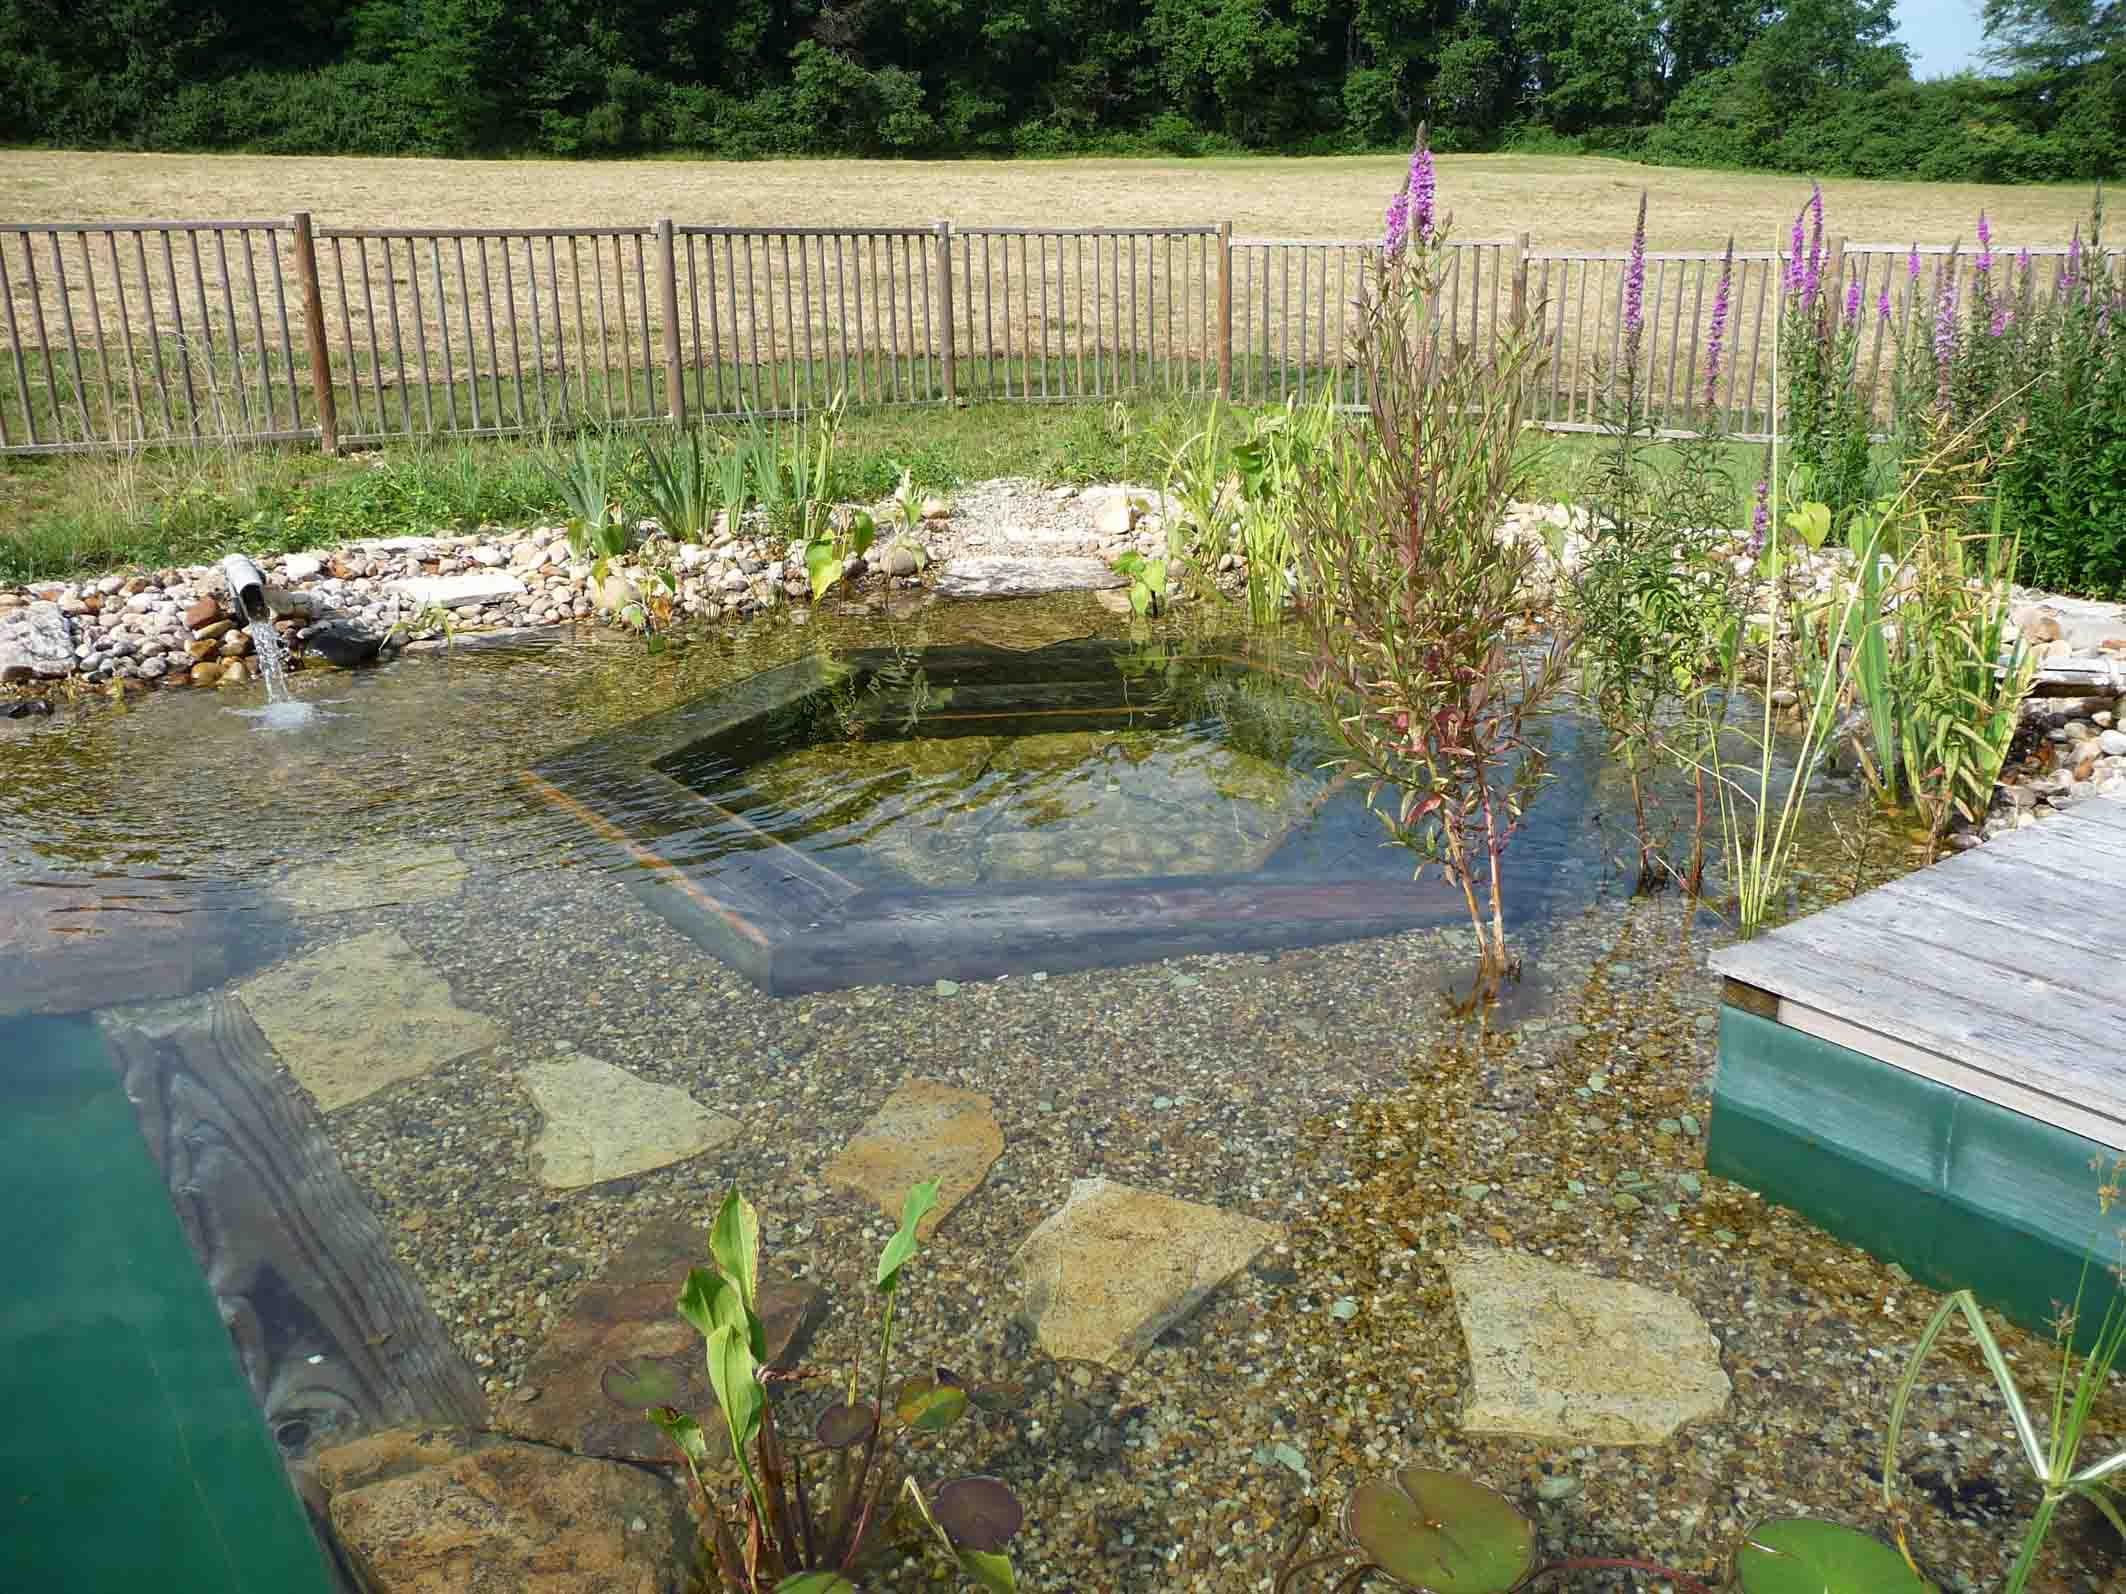 Piscine naturelle dans le jardin le paysagiste for Autoconstruction piscine naturelle